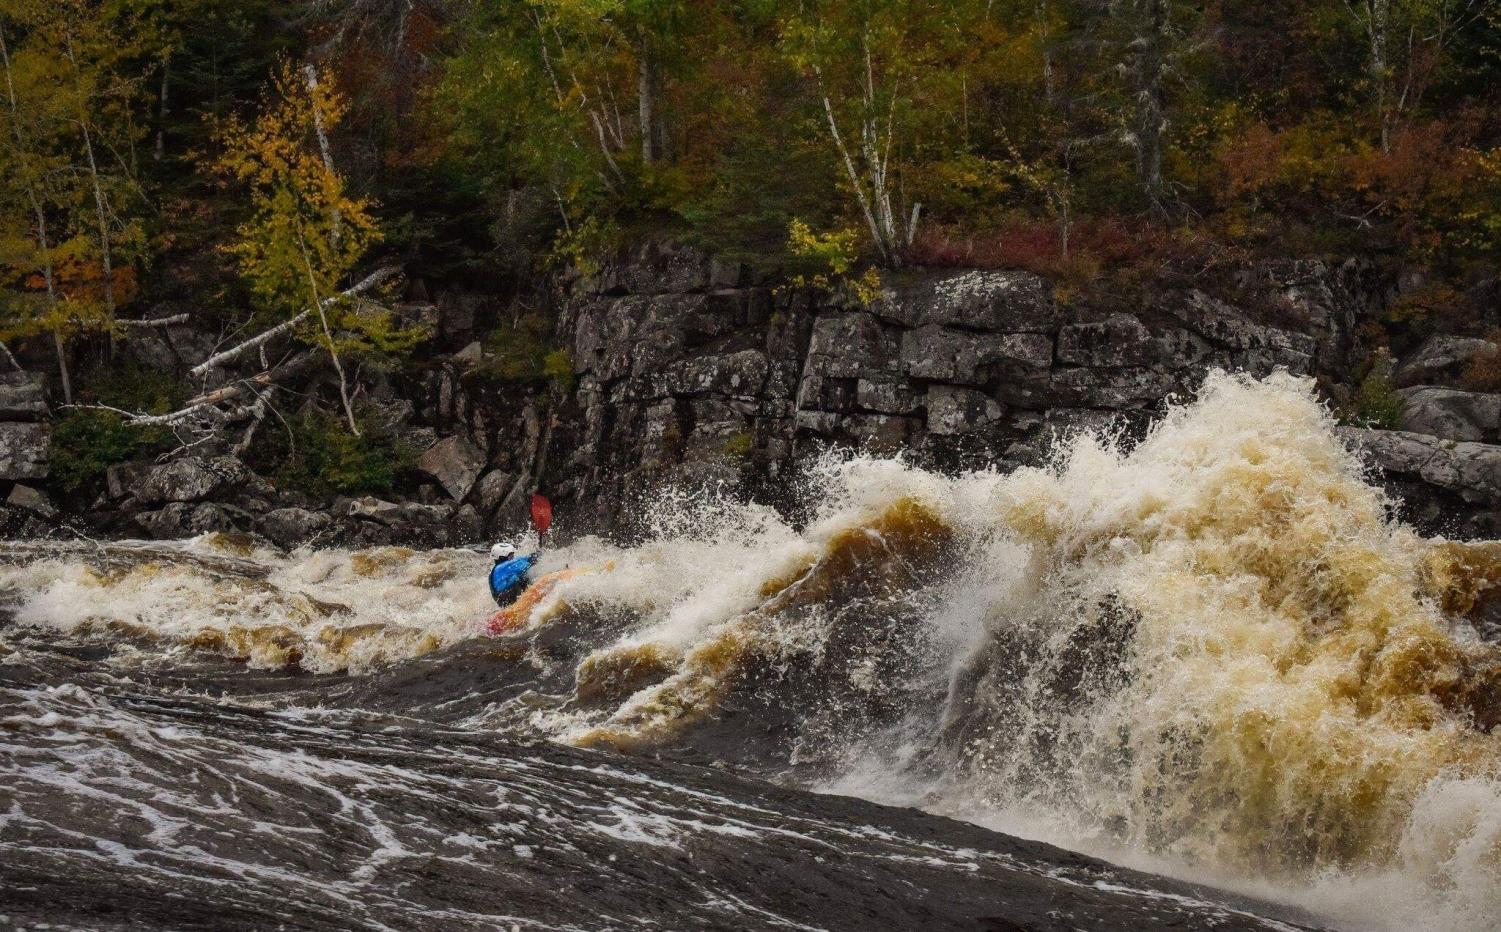 Andrew Palim rides the rapids of the Mistassini river in Quebec, Canada. Palim joined the World Class Kayaking Academy in March 2018. Photo courtesy Andrew Palim.